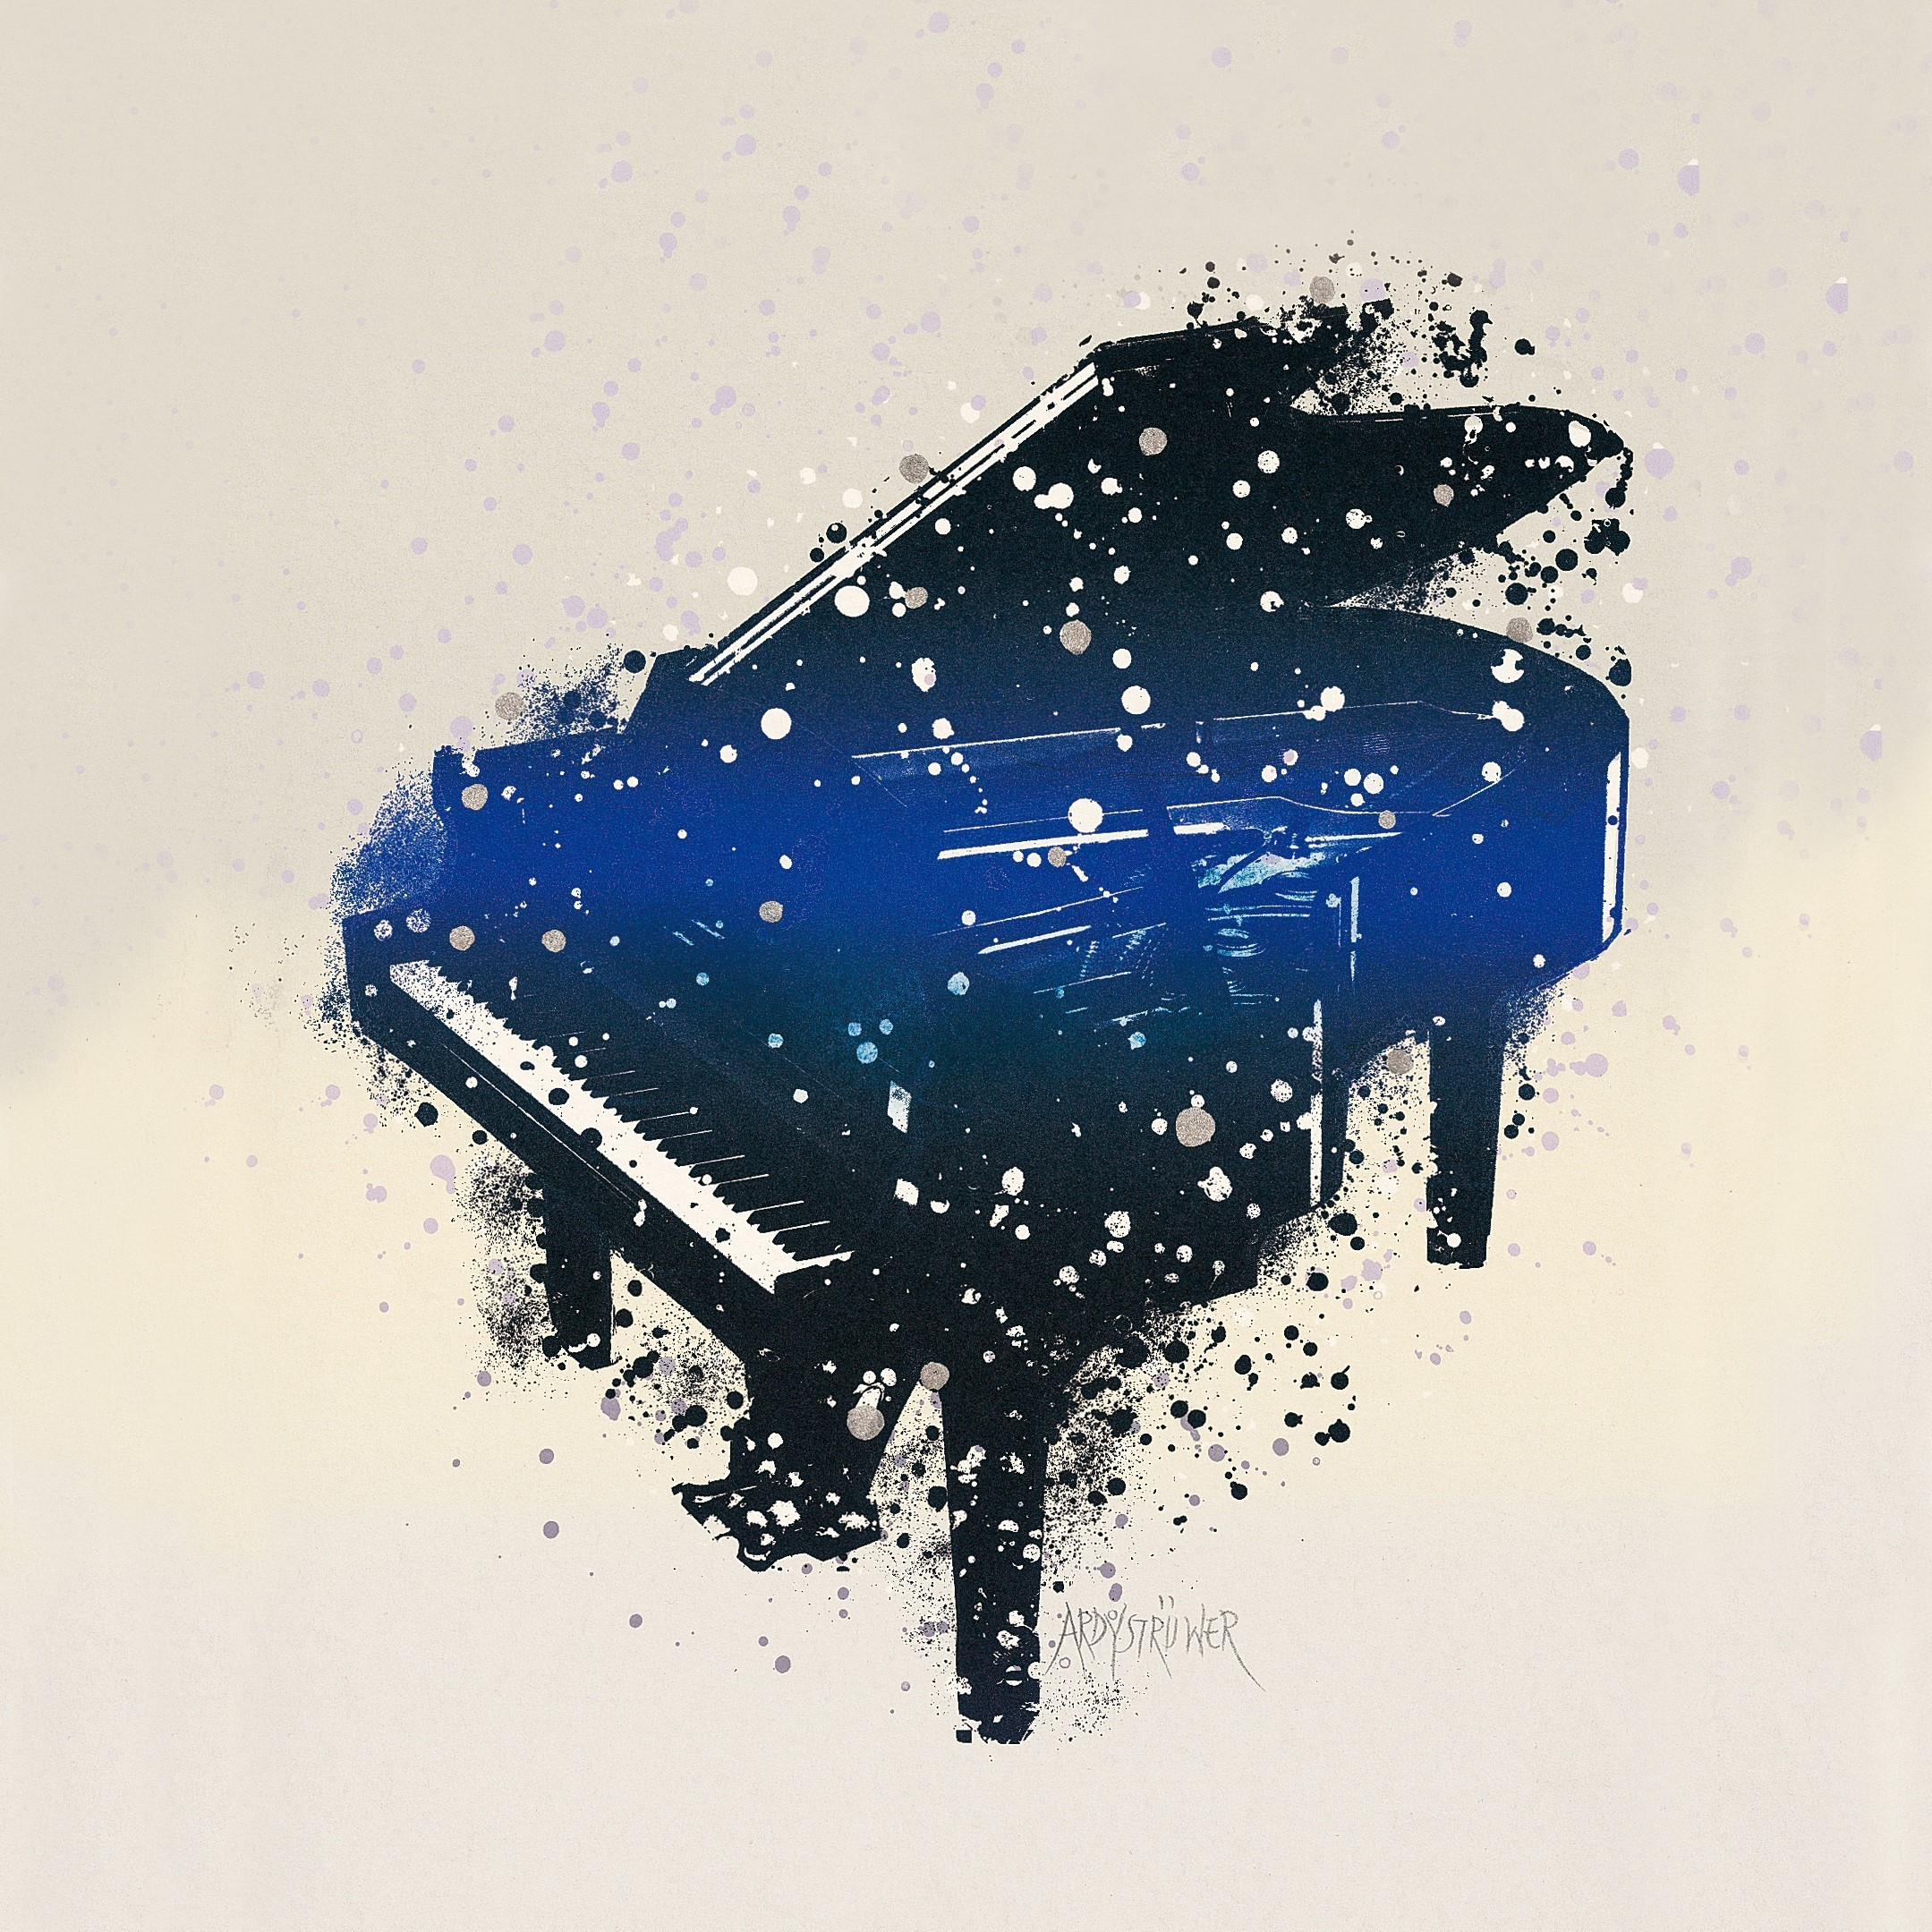 Bugge Wesseltoft – It's Snowing on My Piano